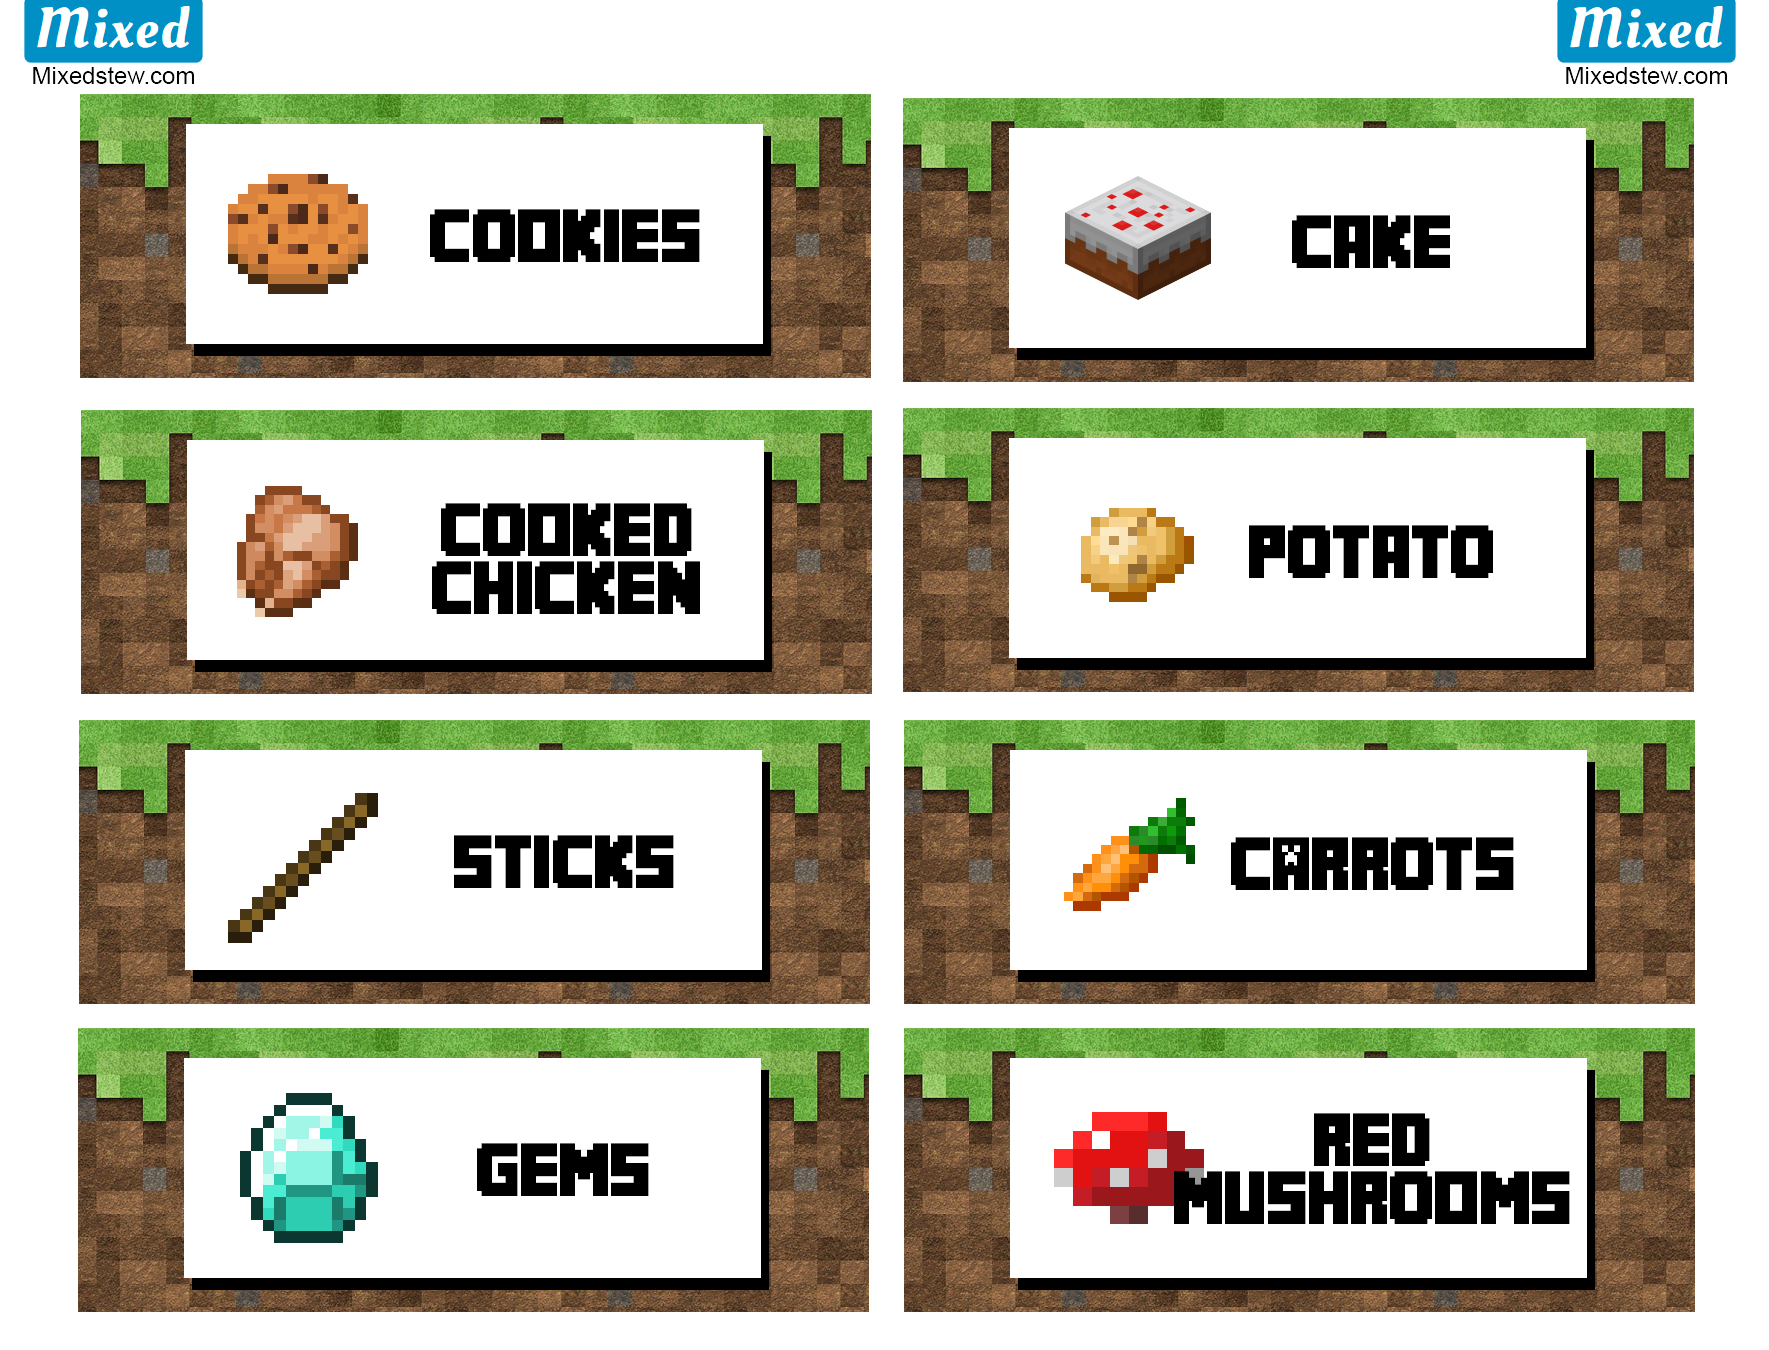 graphic about Minecraft Free Printable Food Labels named Supreme Minecraft occasion printable meals labels - Mixedstew